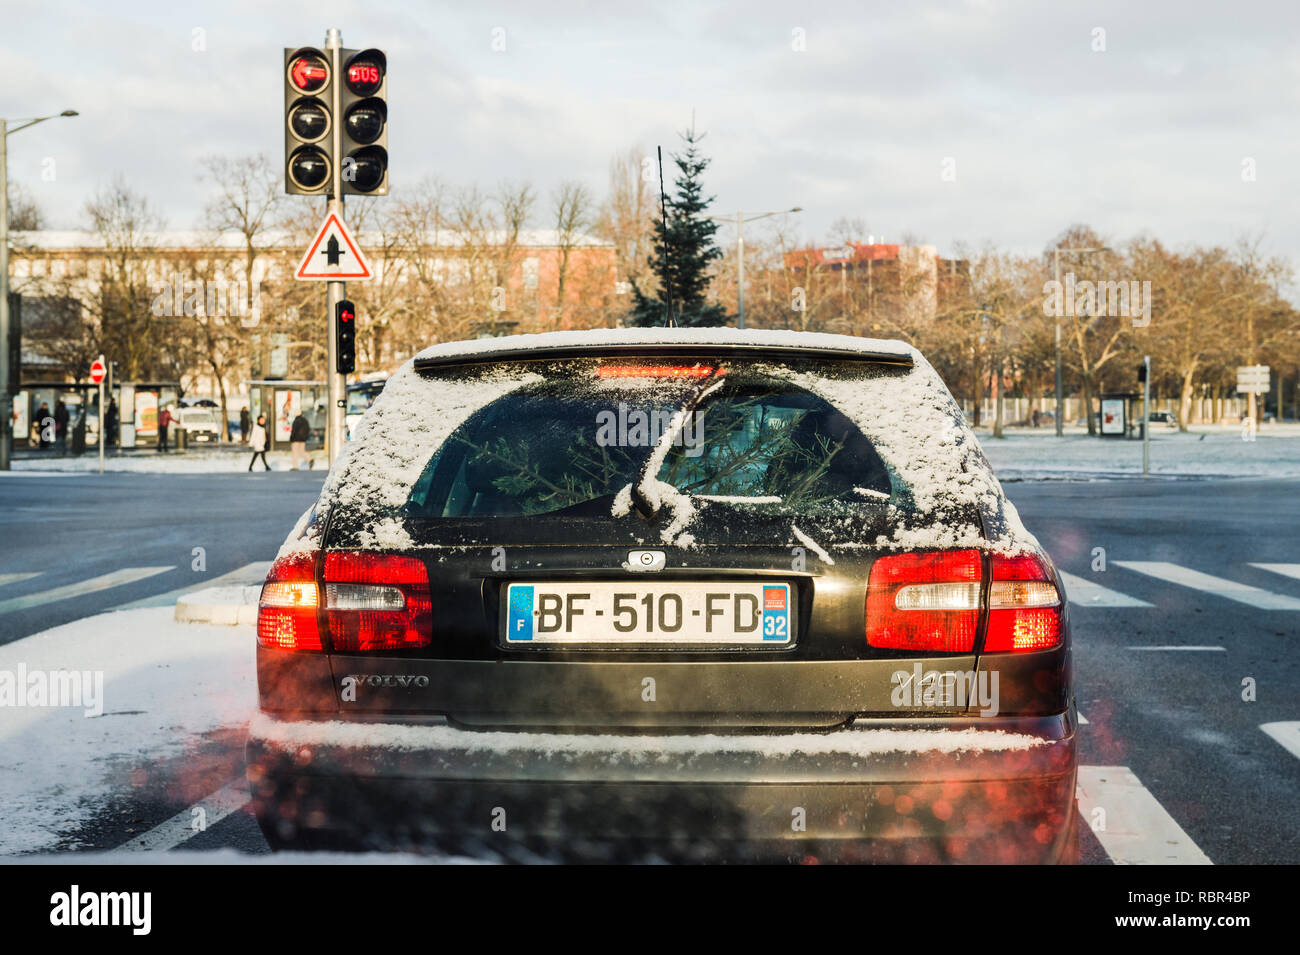 PARIS, FRANCE - JAN 16, 2017: Rear view of a Volvo V40 wagon car waiting at red light transporting in the trunk a fir tree for Christmas - getting ready for Christmas, buying fir tree - Stock Image